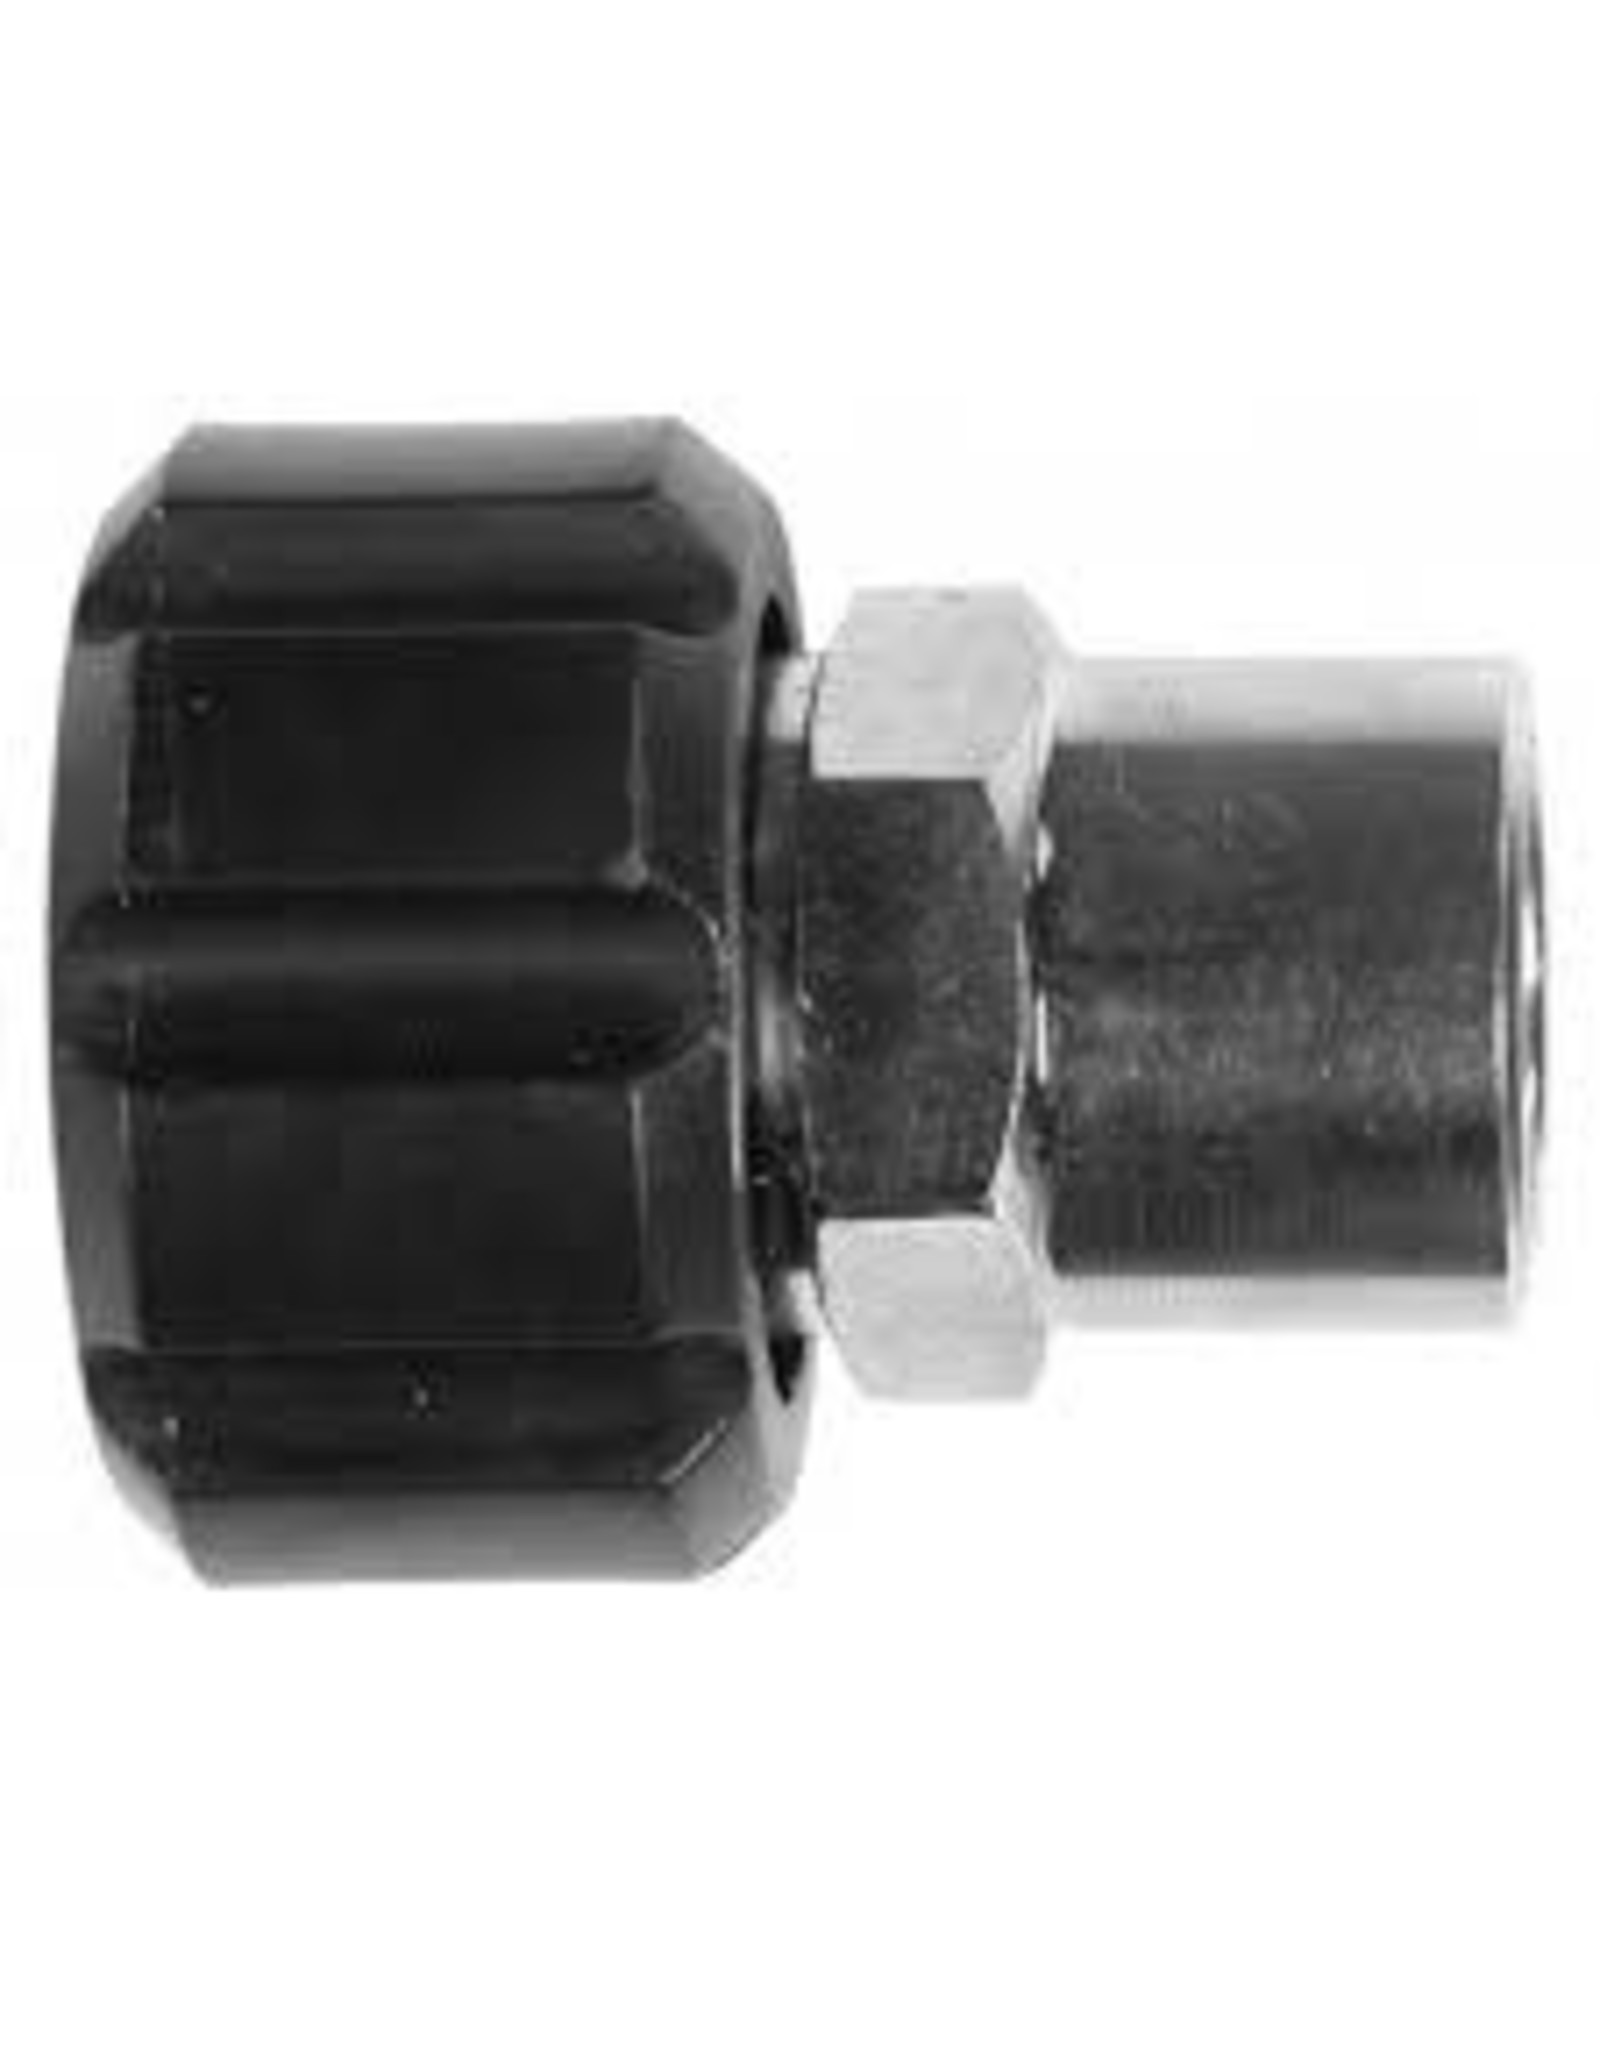 BE 85.300.125 M22 Adapter